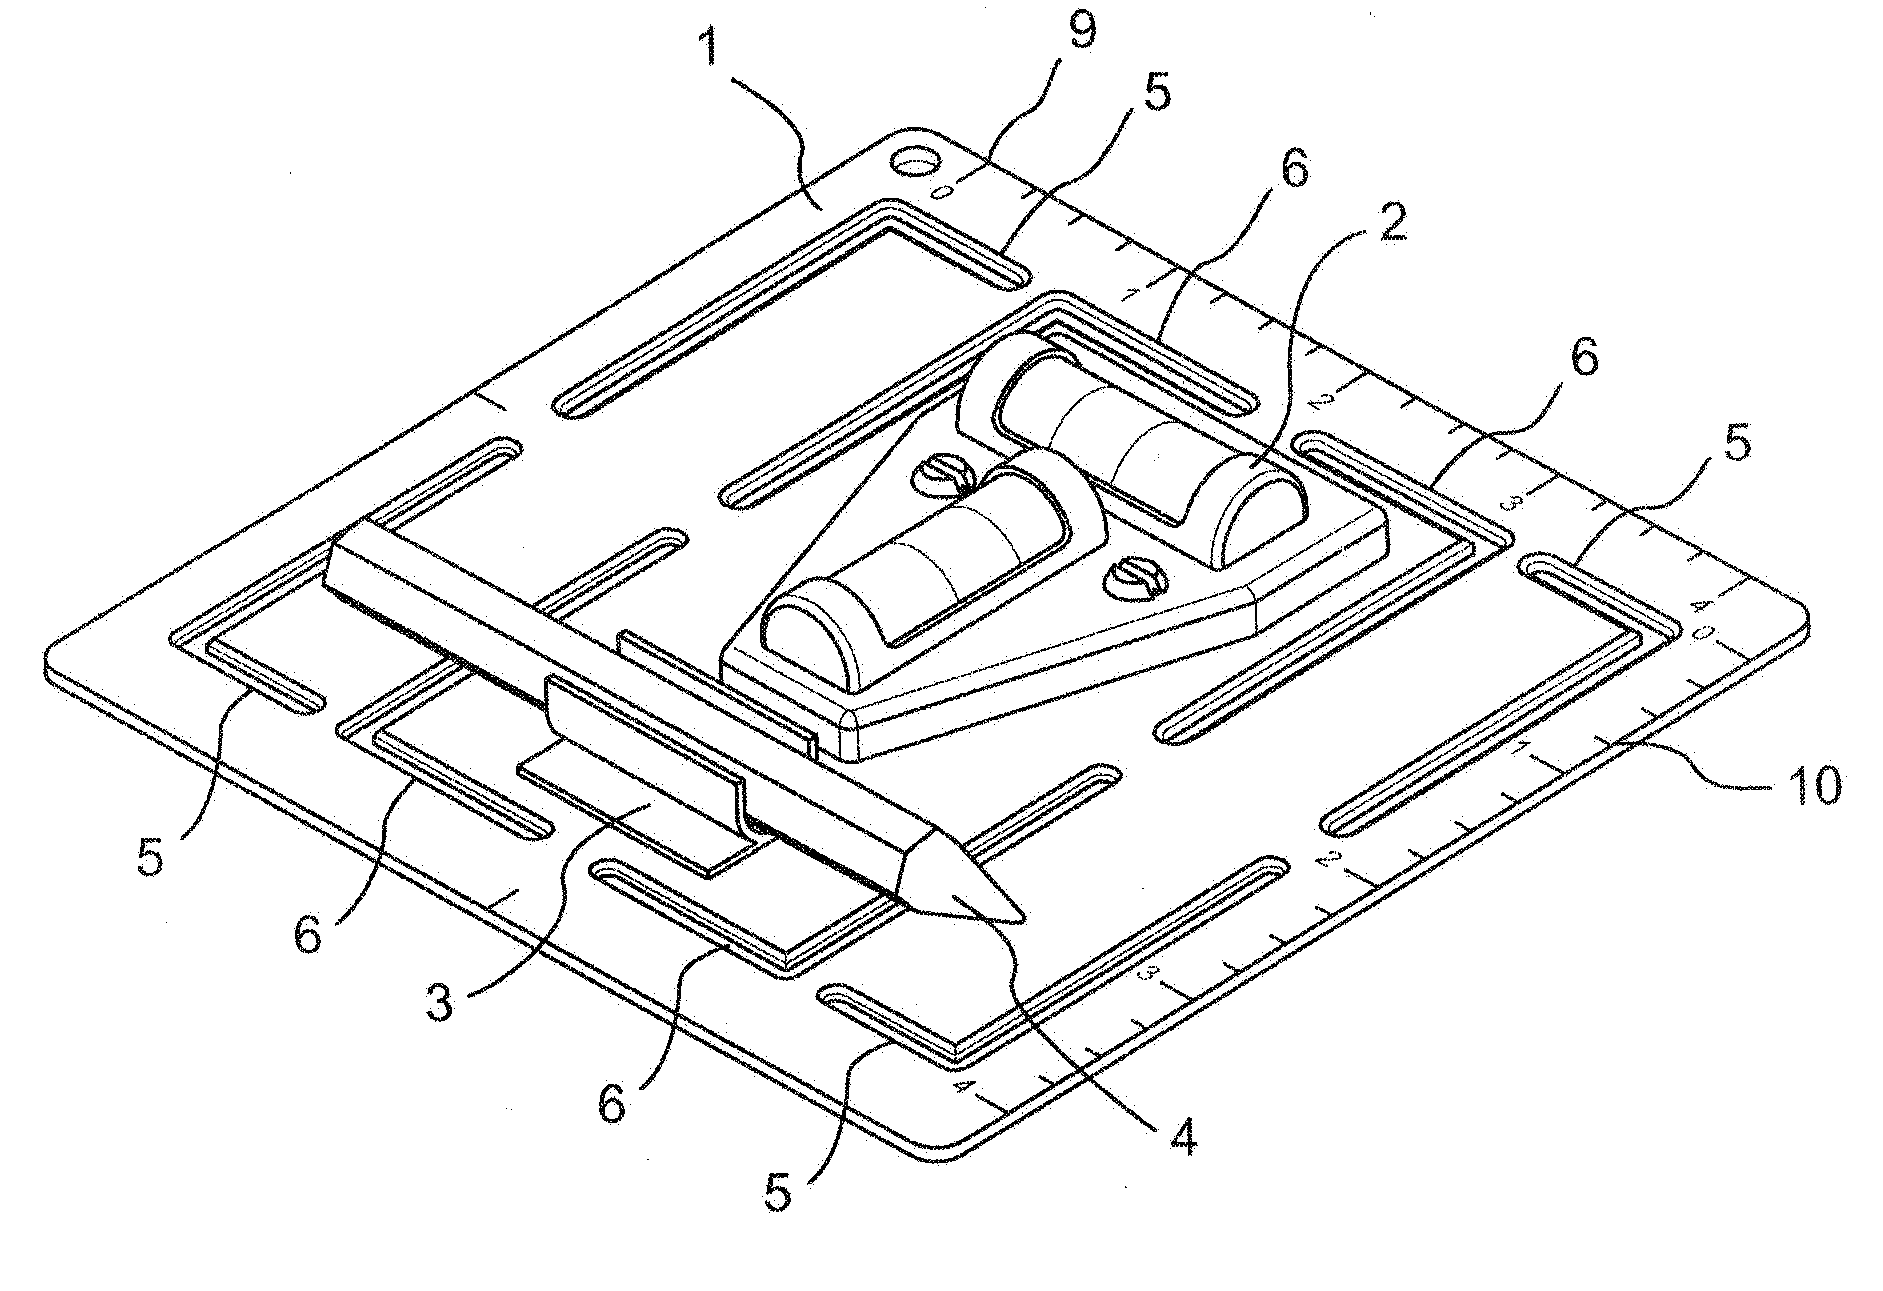 patent us20100095543 - tool for installing an electrical outlet box